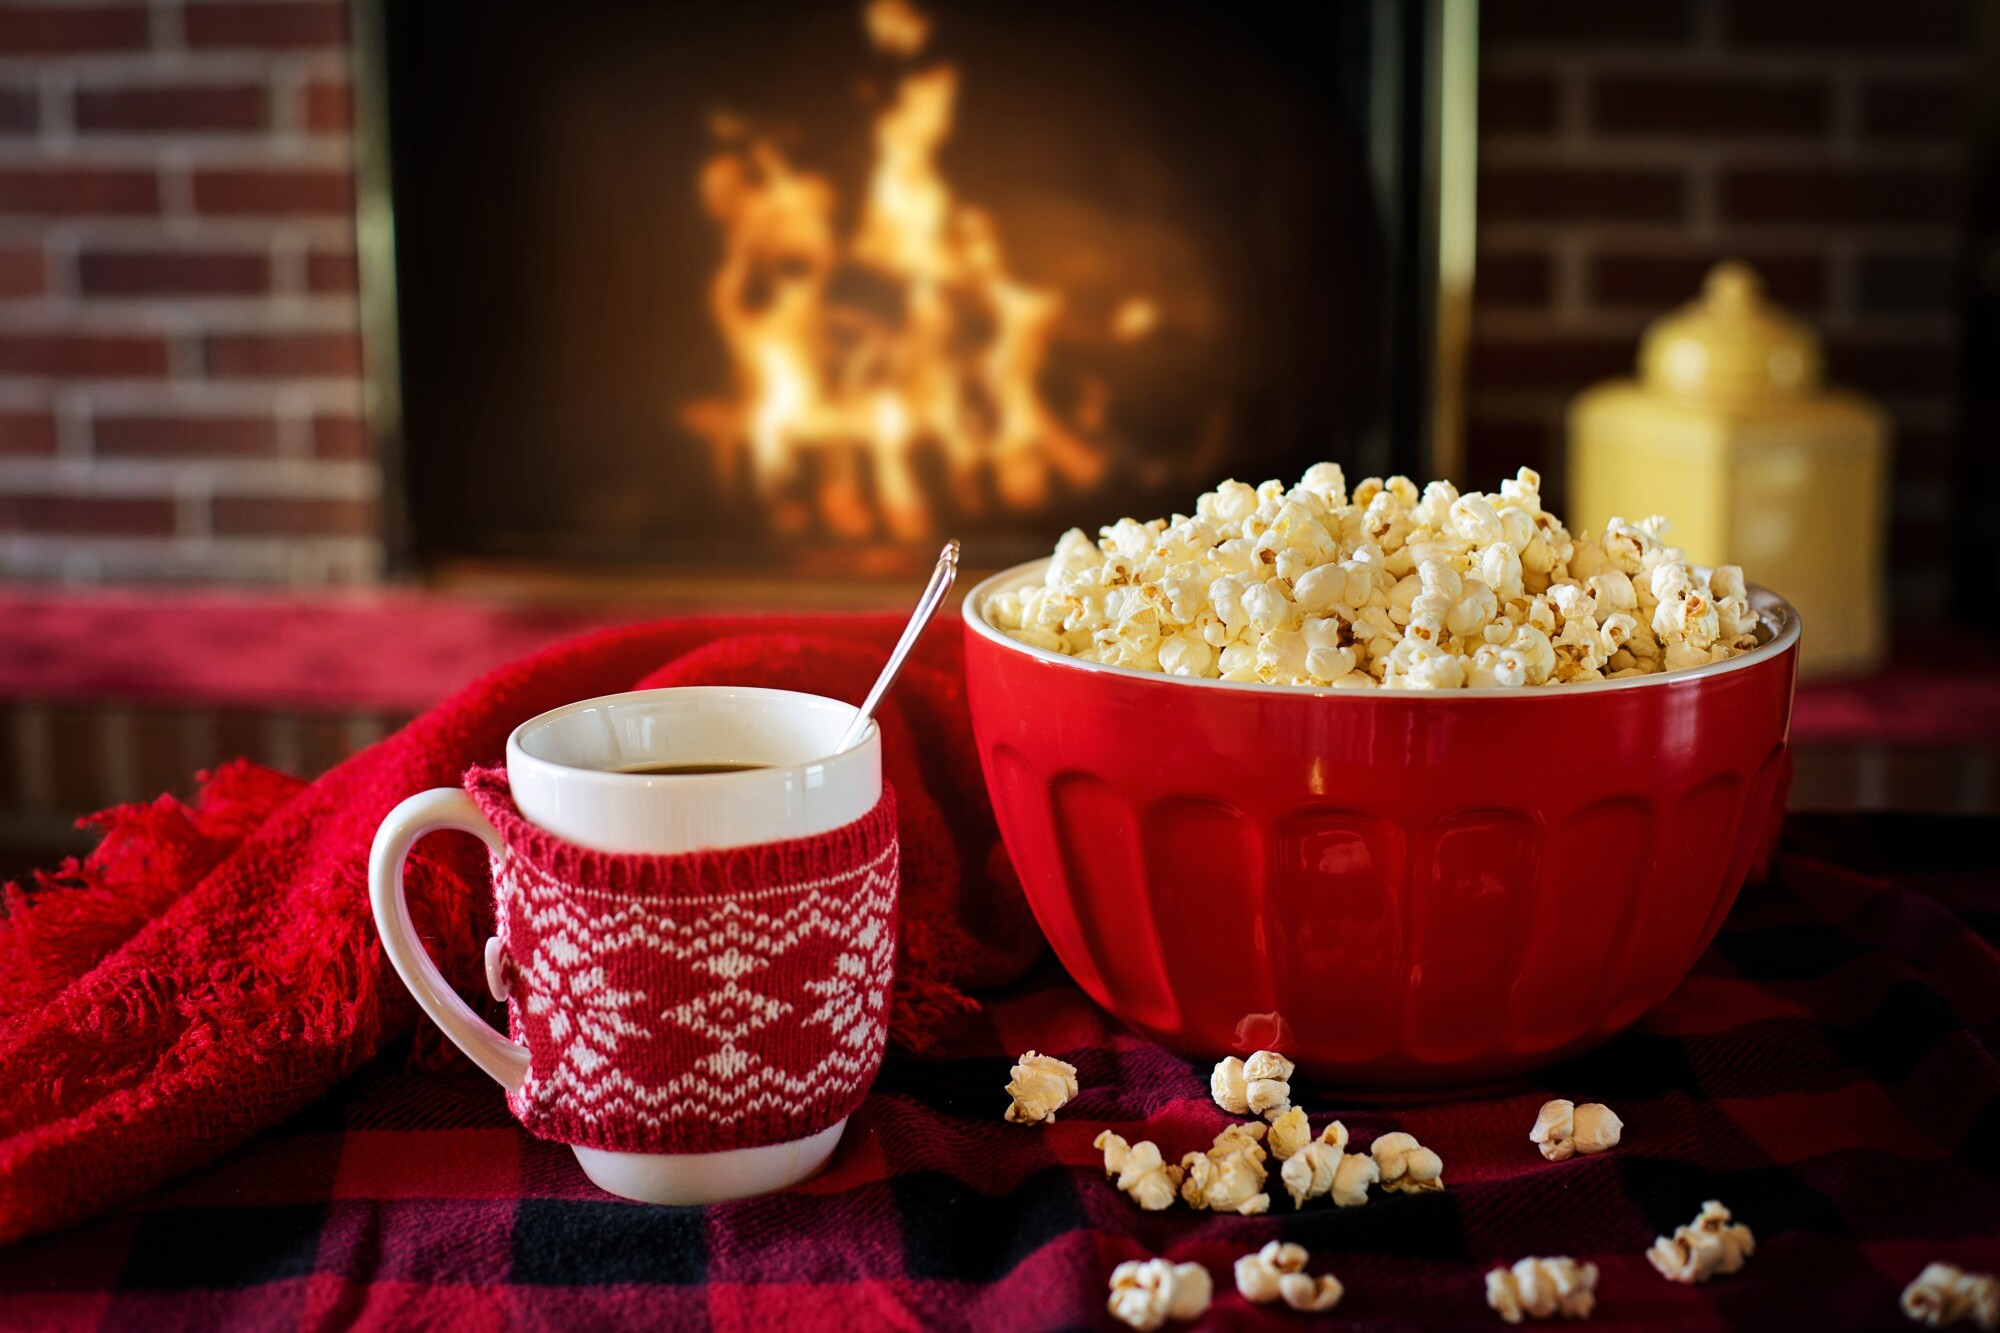 How to Make Your Home Cozy for the Winter